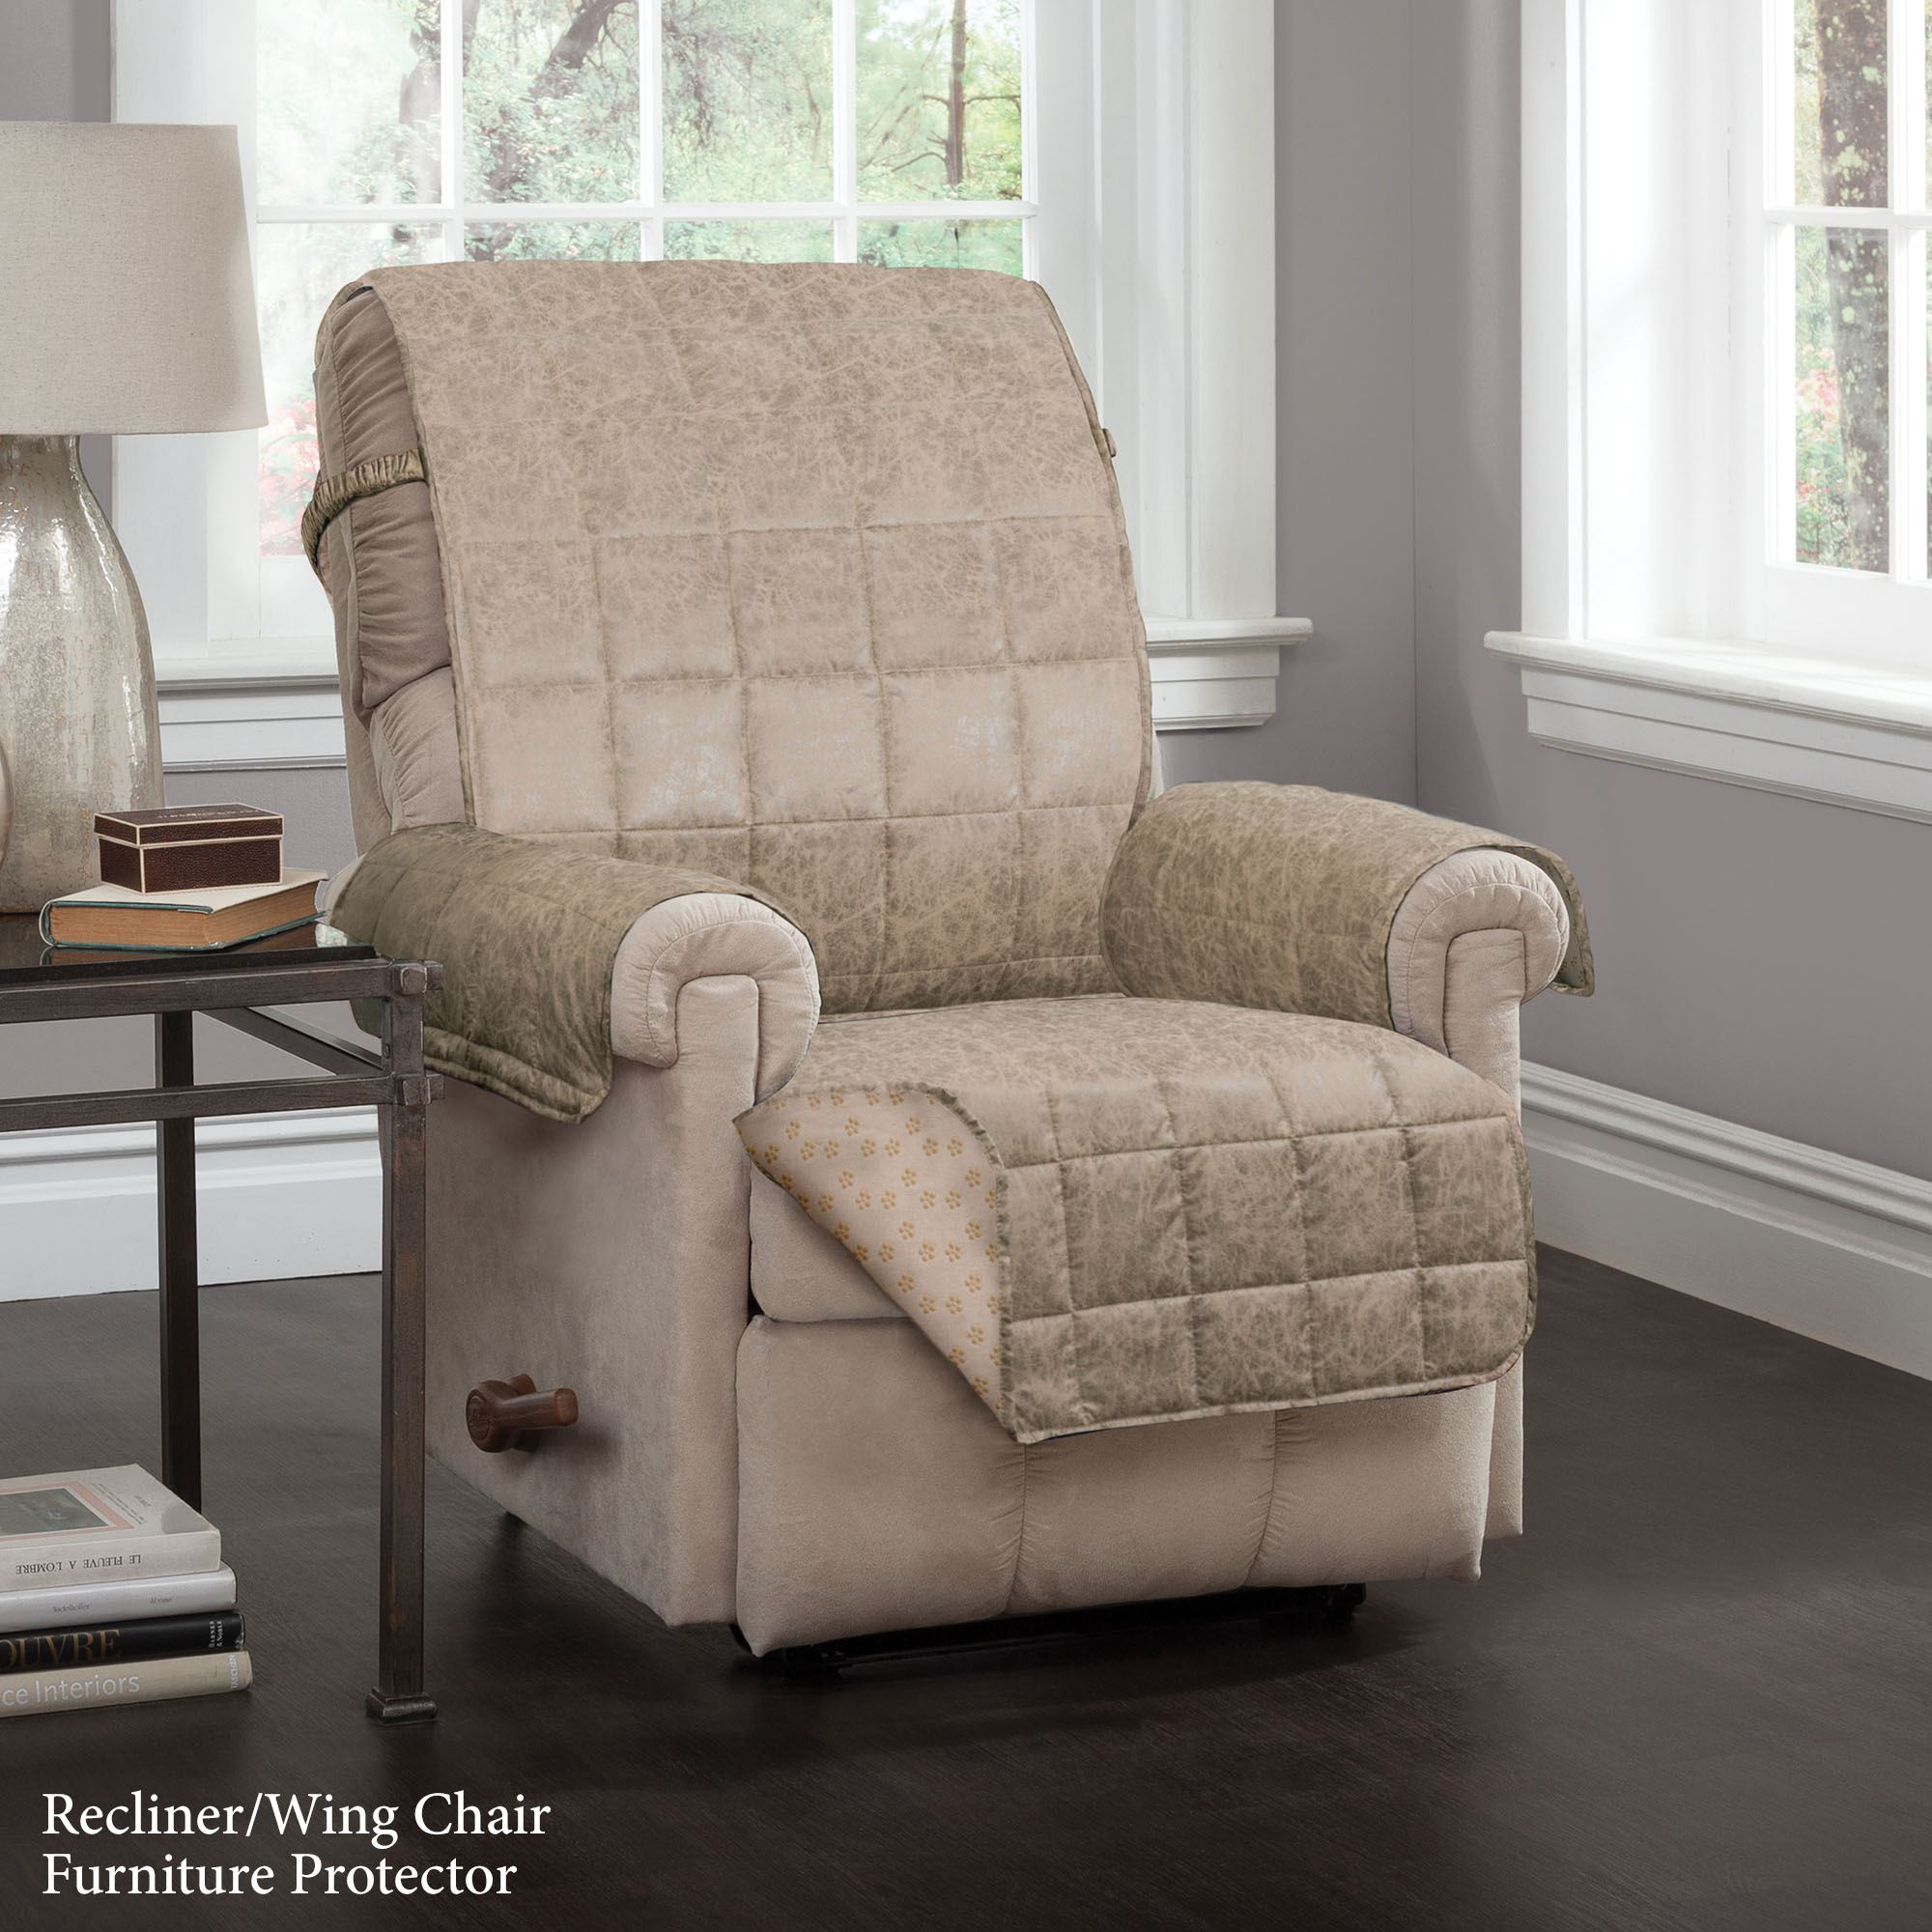 faux leather gripper chair cushions club slipcover bed bath and beyond larue sand furniture protectors with